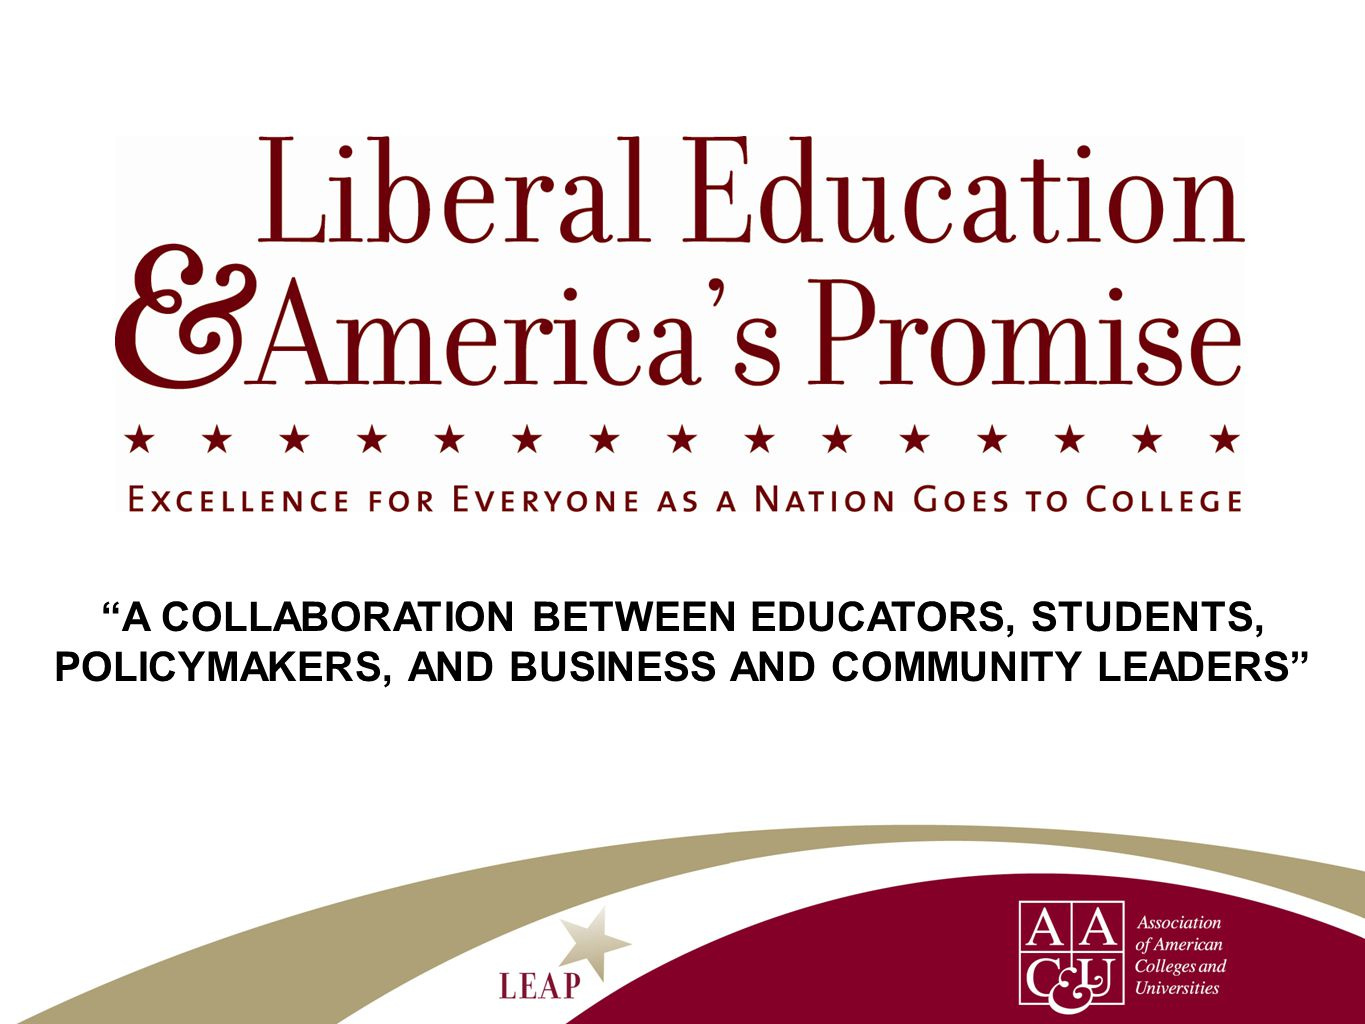 LEAP in 2014 Bringing Democracy and Economic Opportunity Together – Through the Power and Value of A Horizon-Expanding, Innovative, and Transformative Liberal Education